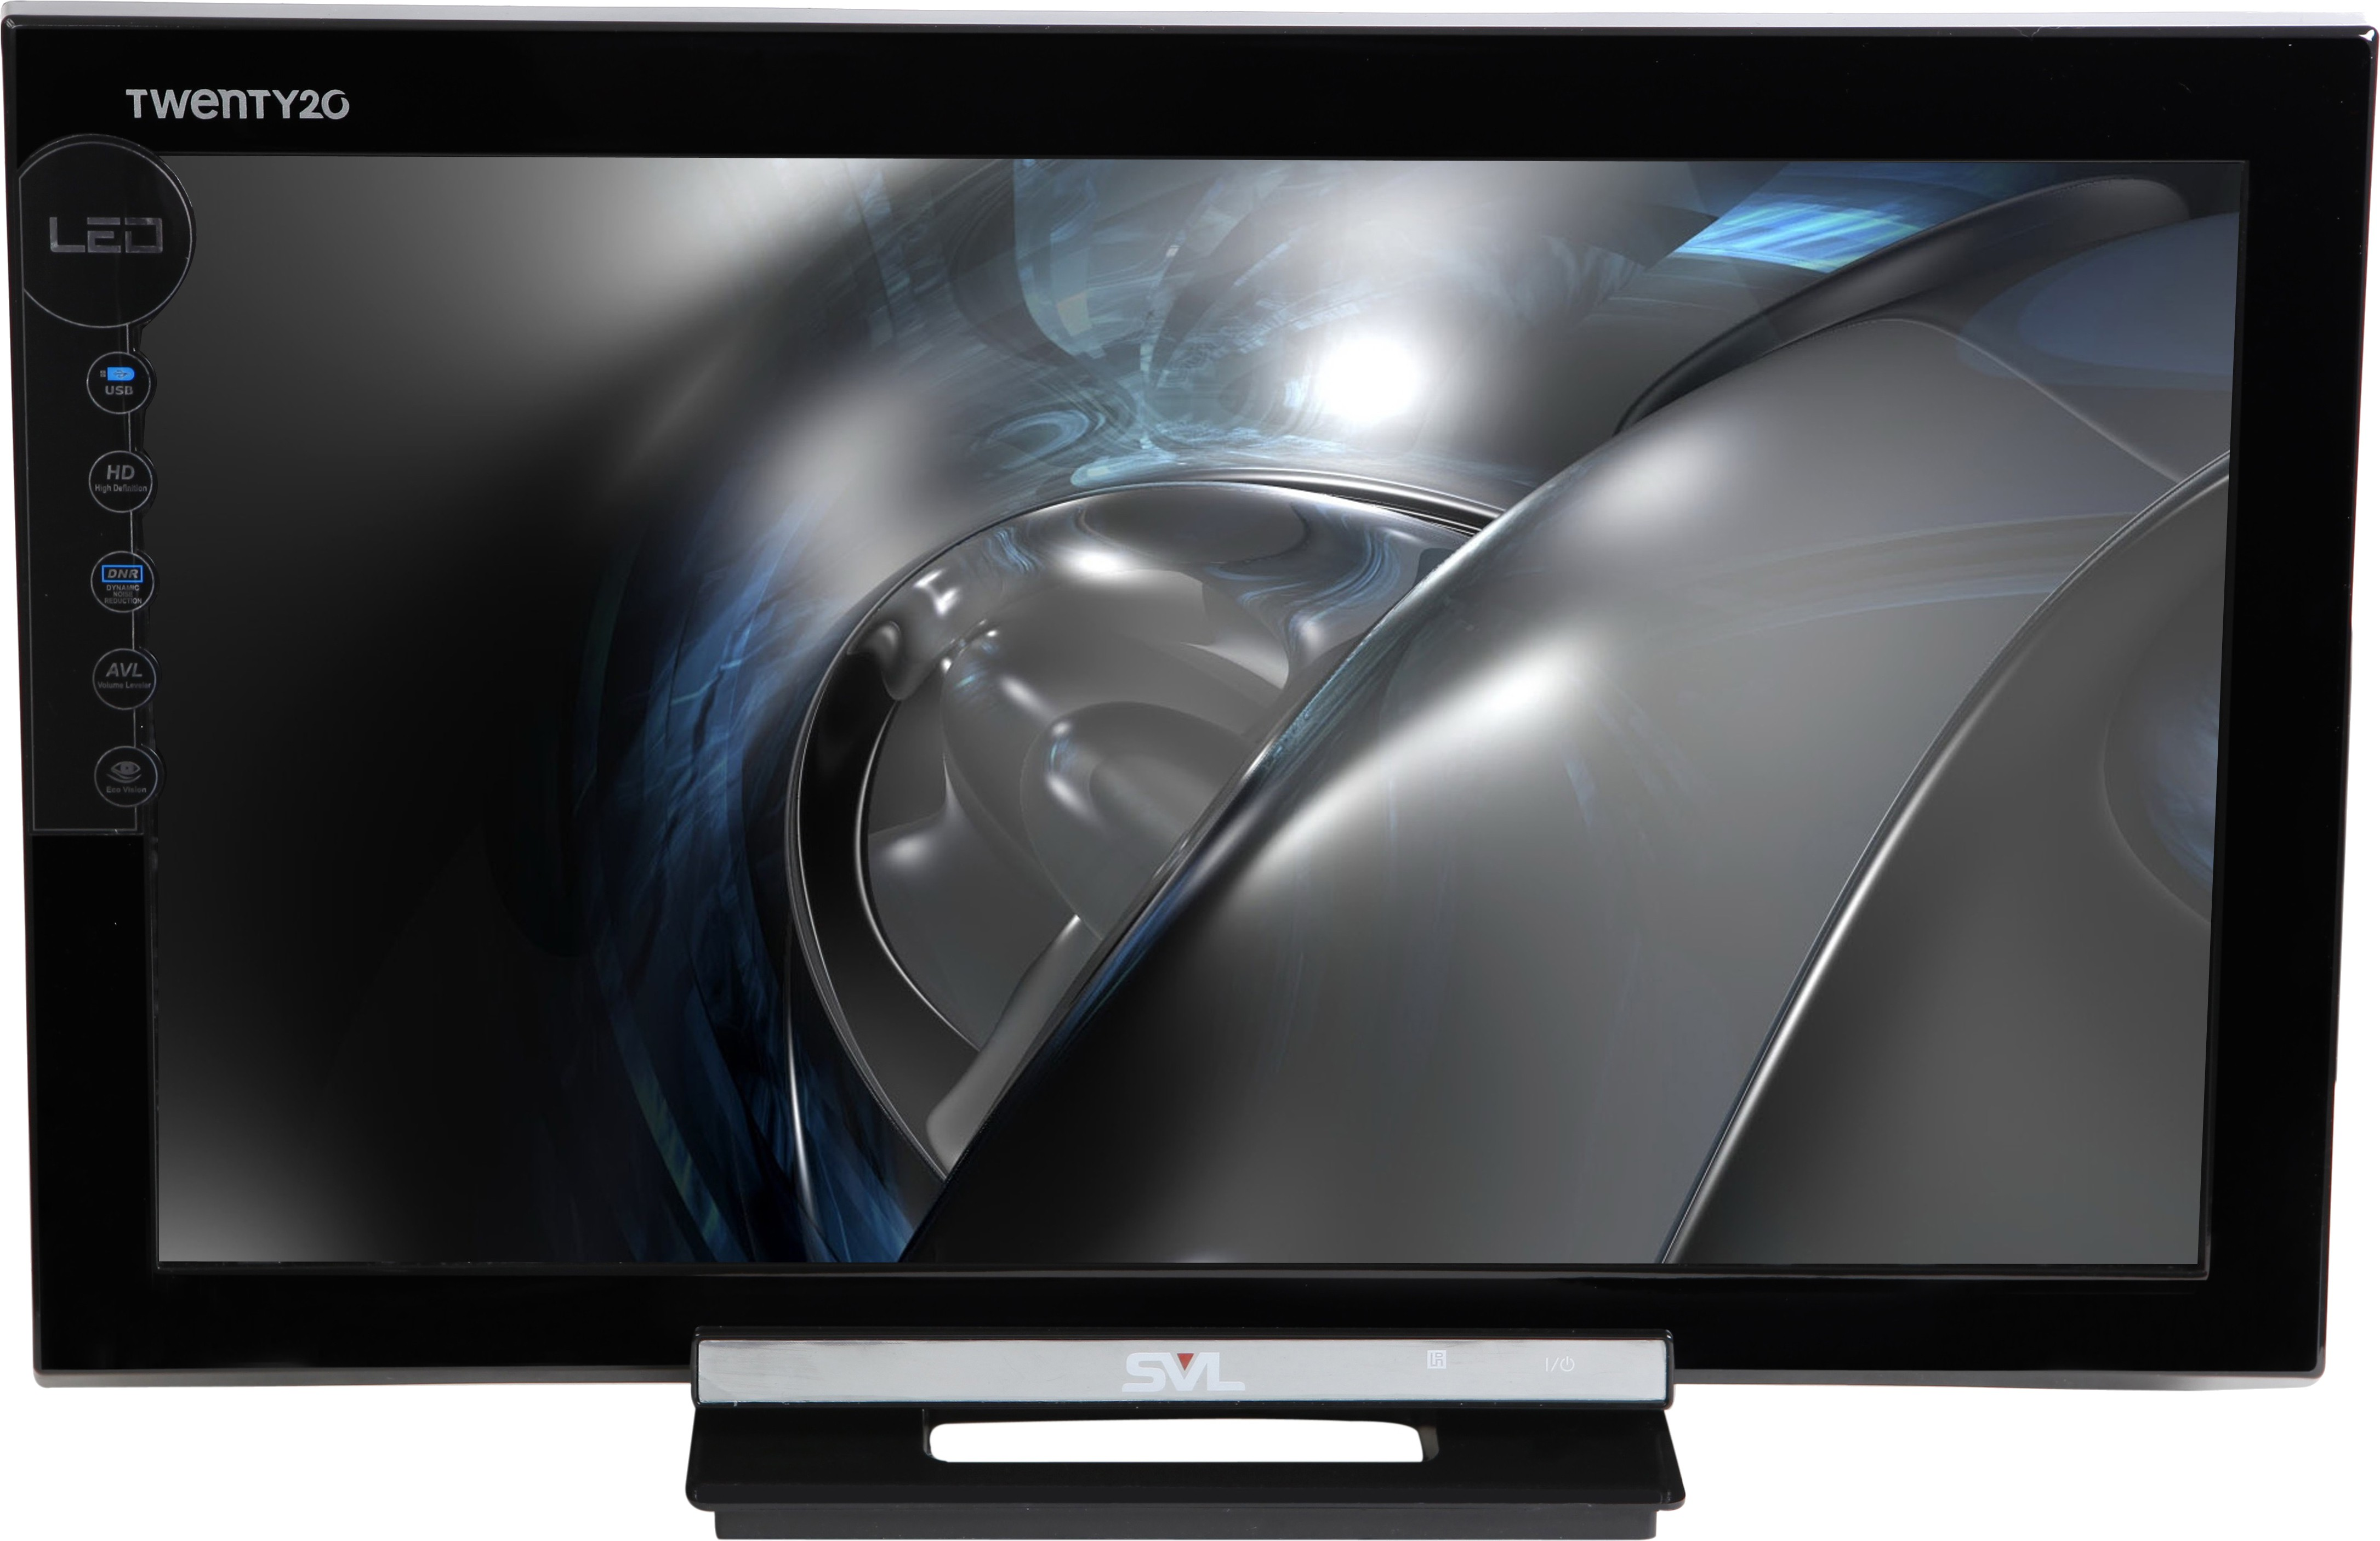 SVL TWENTY20 20 Inches HD Ready LED TV